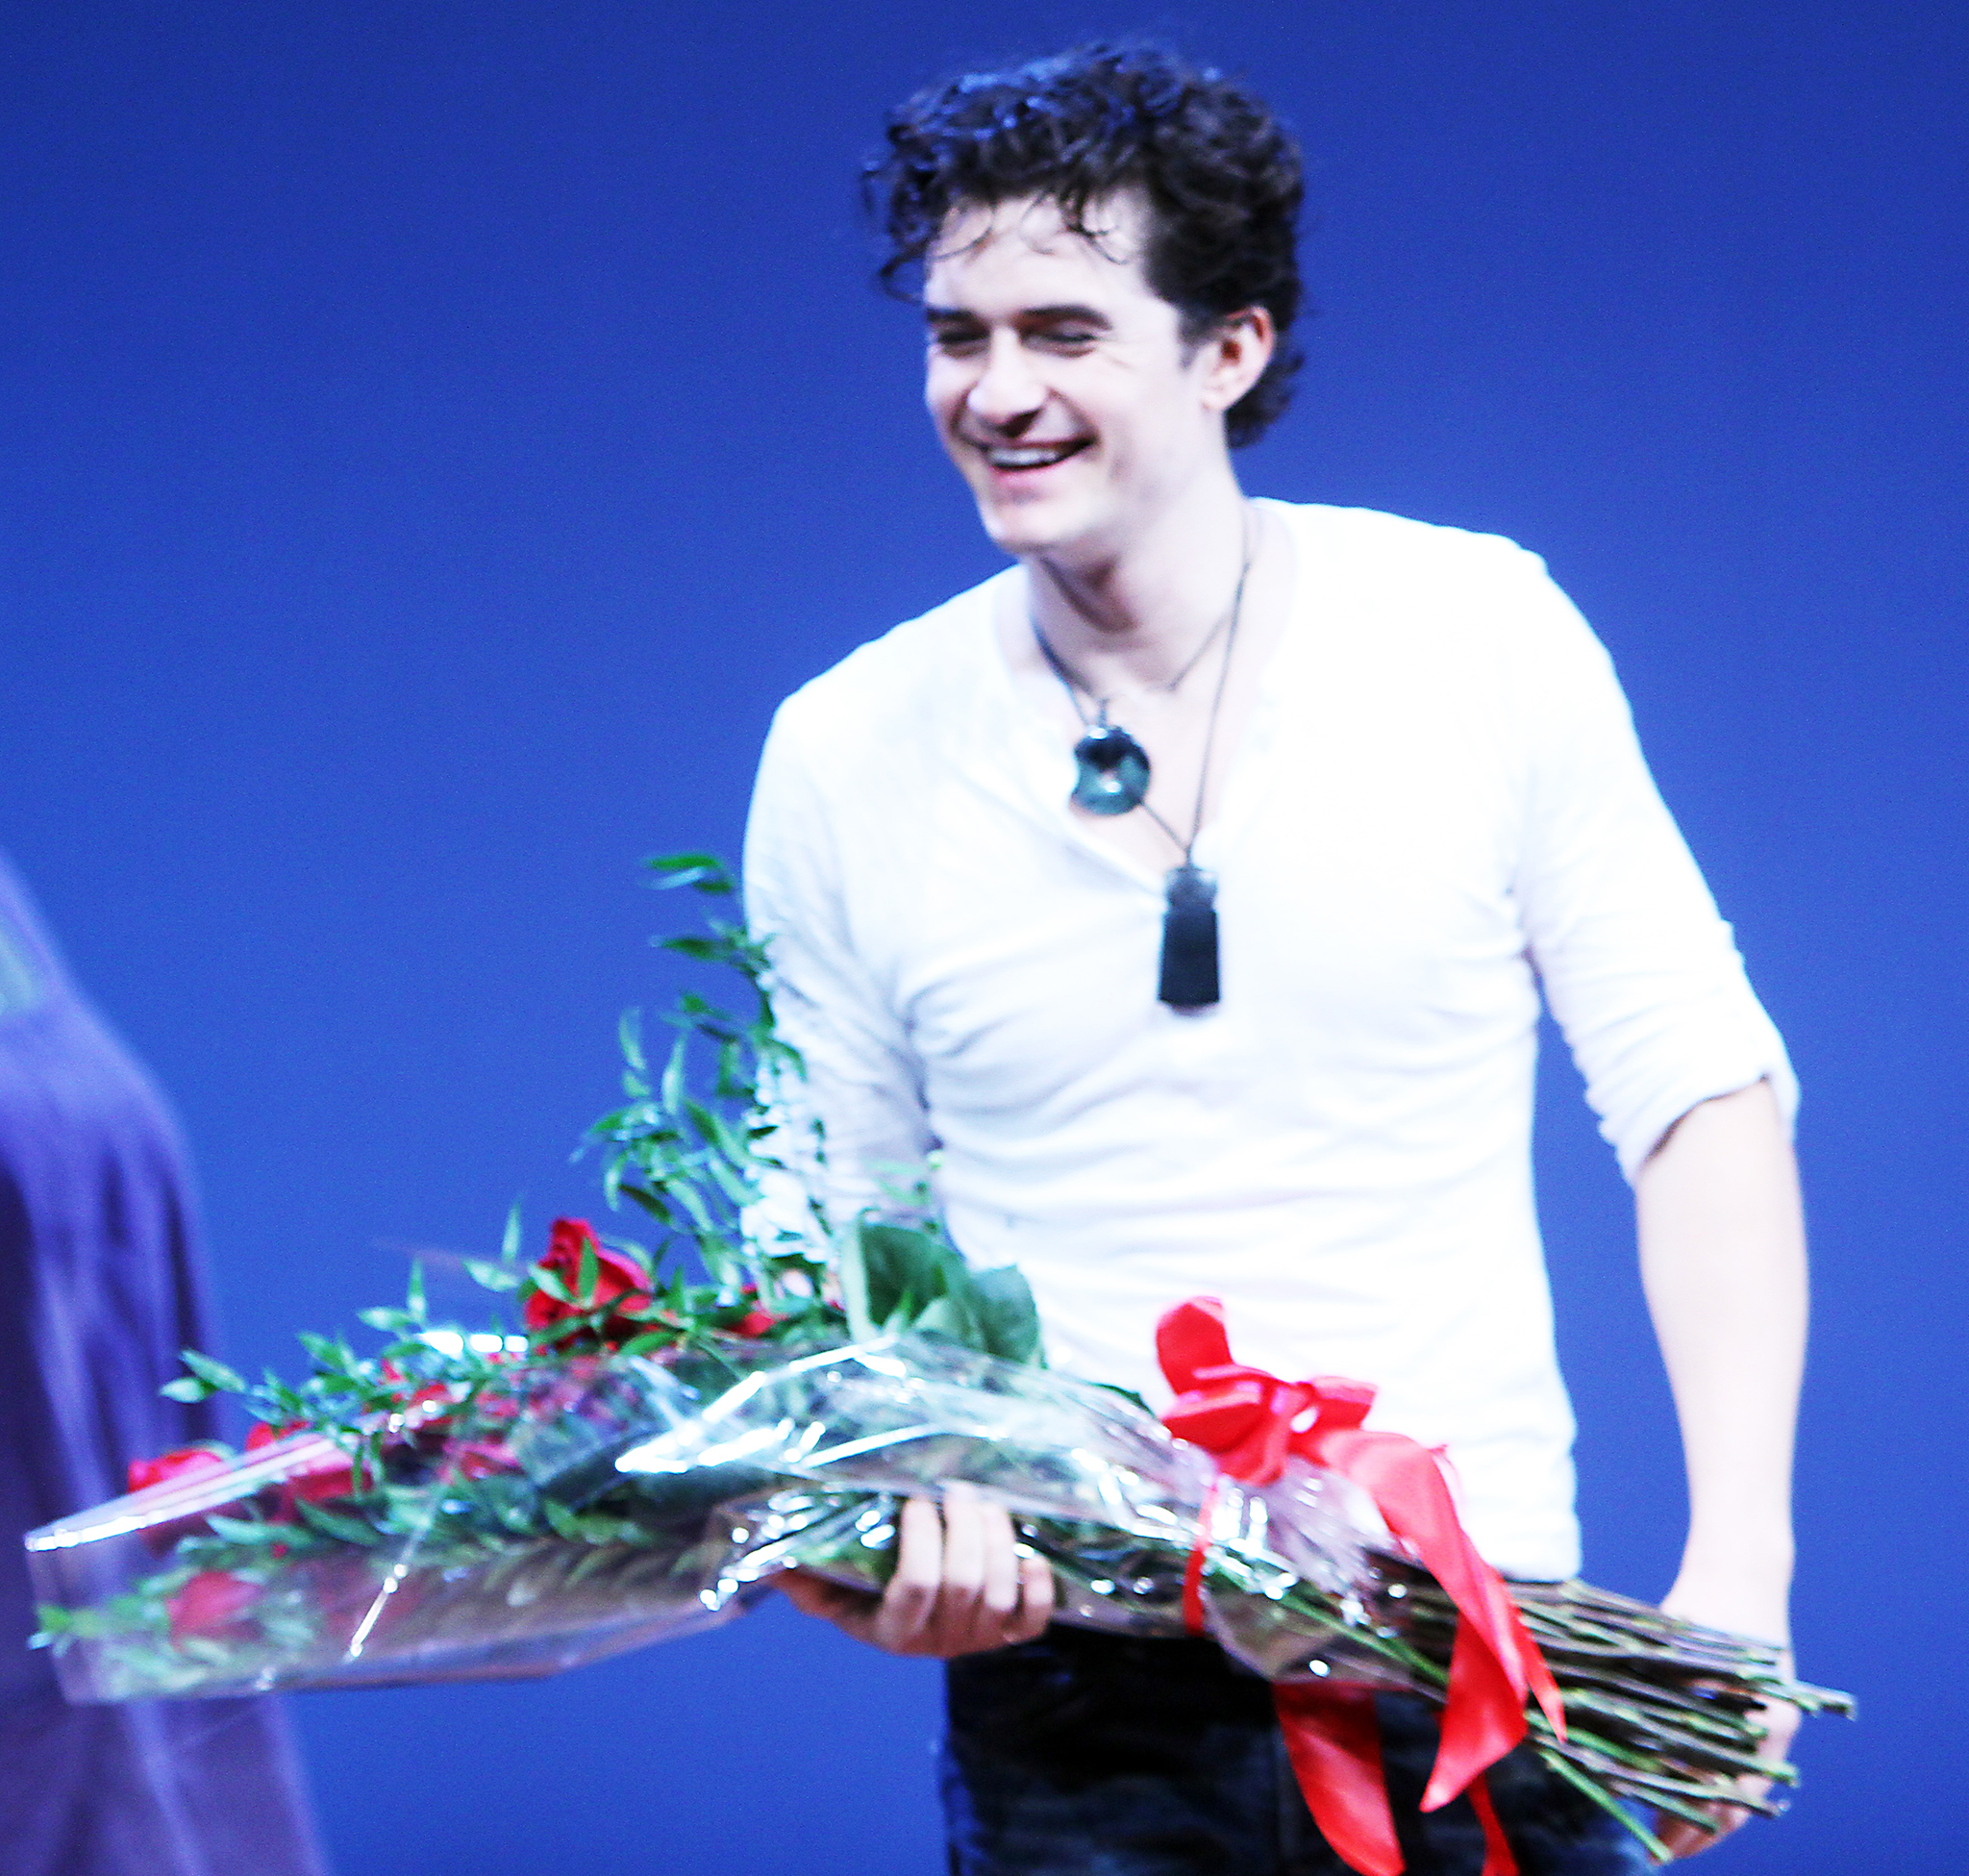 Orlando Bloom taking a bow for 'Romeo and Juliet.' (INFDaily.com)